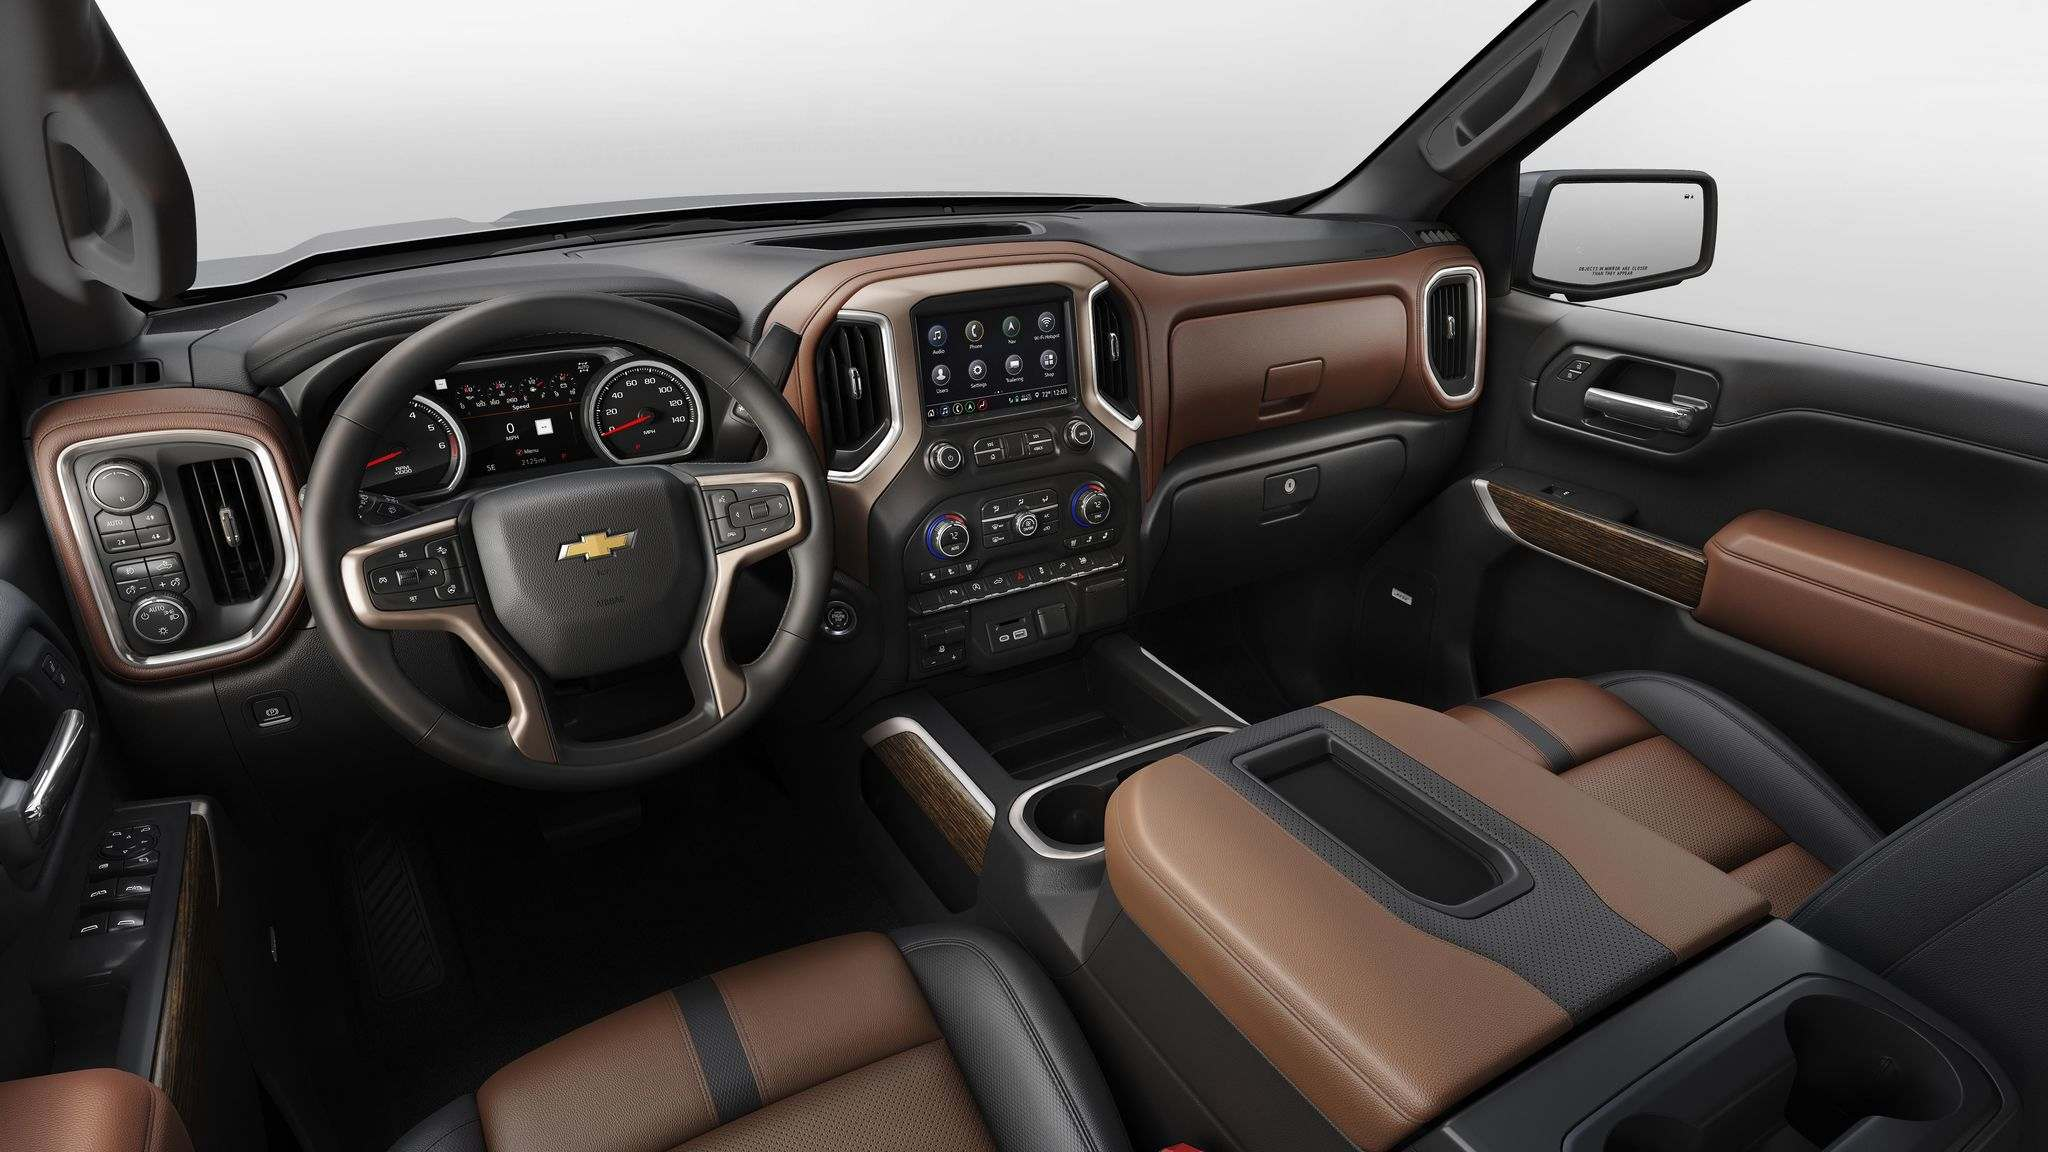 The 2019 Chevrolet Silverado's interior.